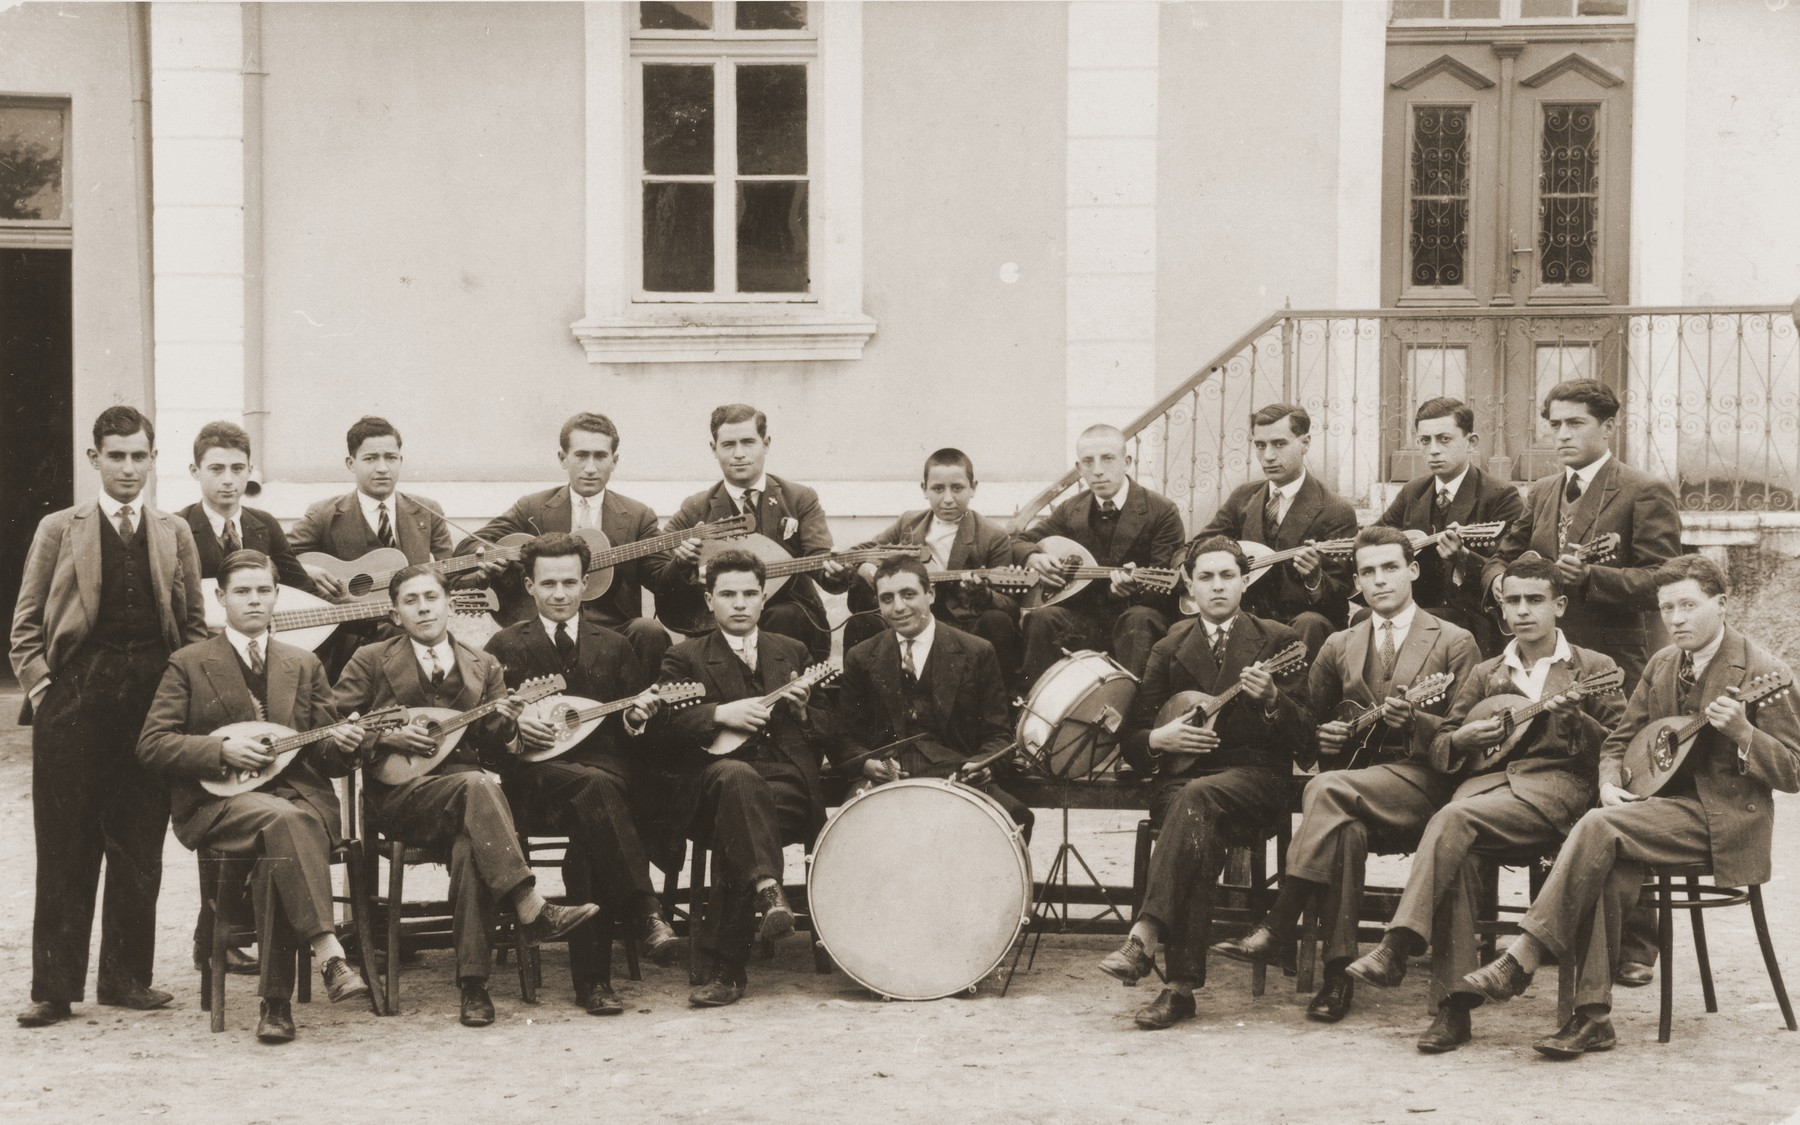 A group of Macedonian Jewish youth who are members of a mandolin band, pose outside a building in Bitola, Macedonia.